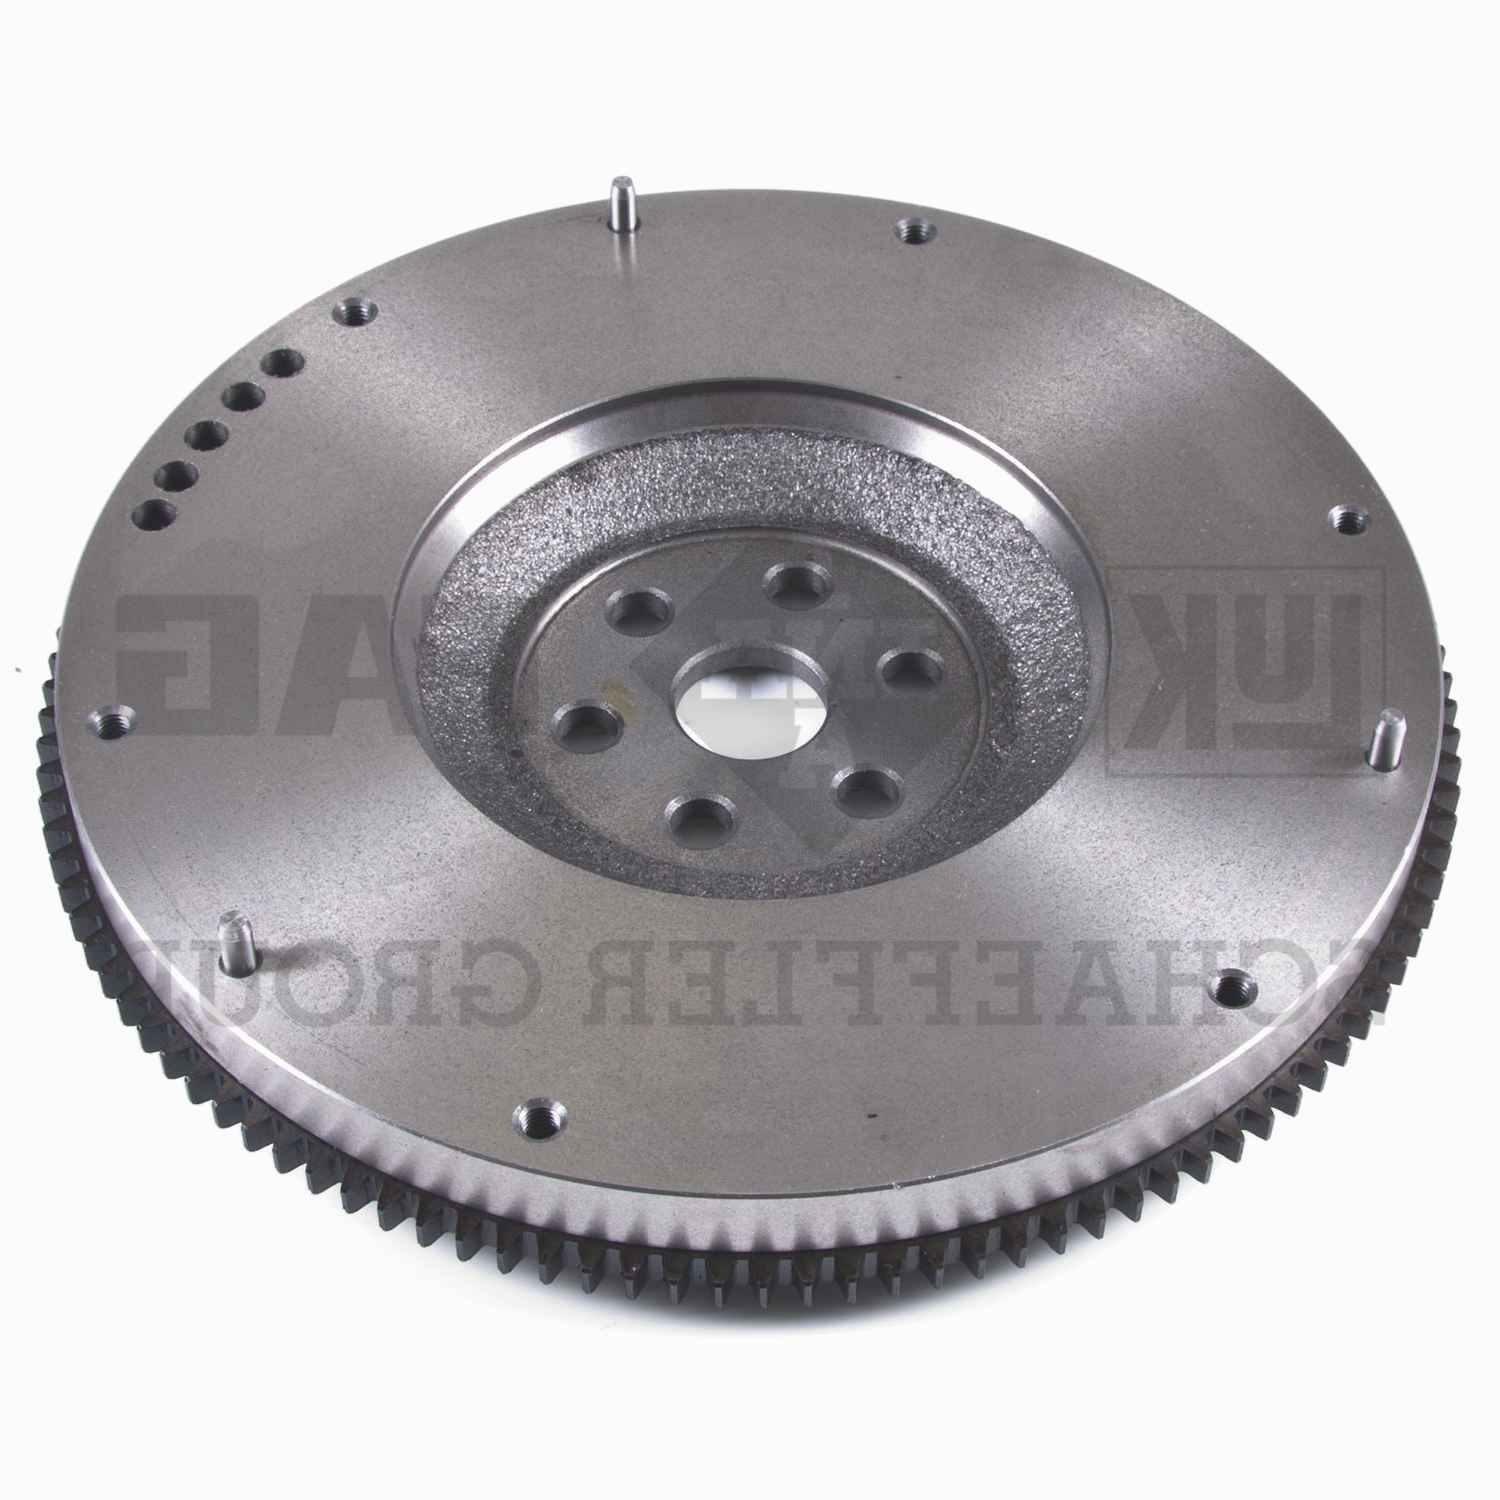 Flywheel Clutch Diagram New ford Ranger Clutch Of Flywheel Clutch Diagram Great Description About Funk Engine with Fabulous